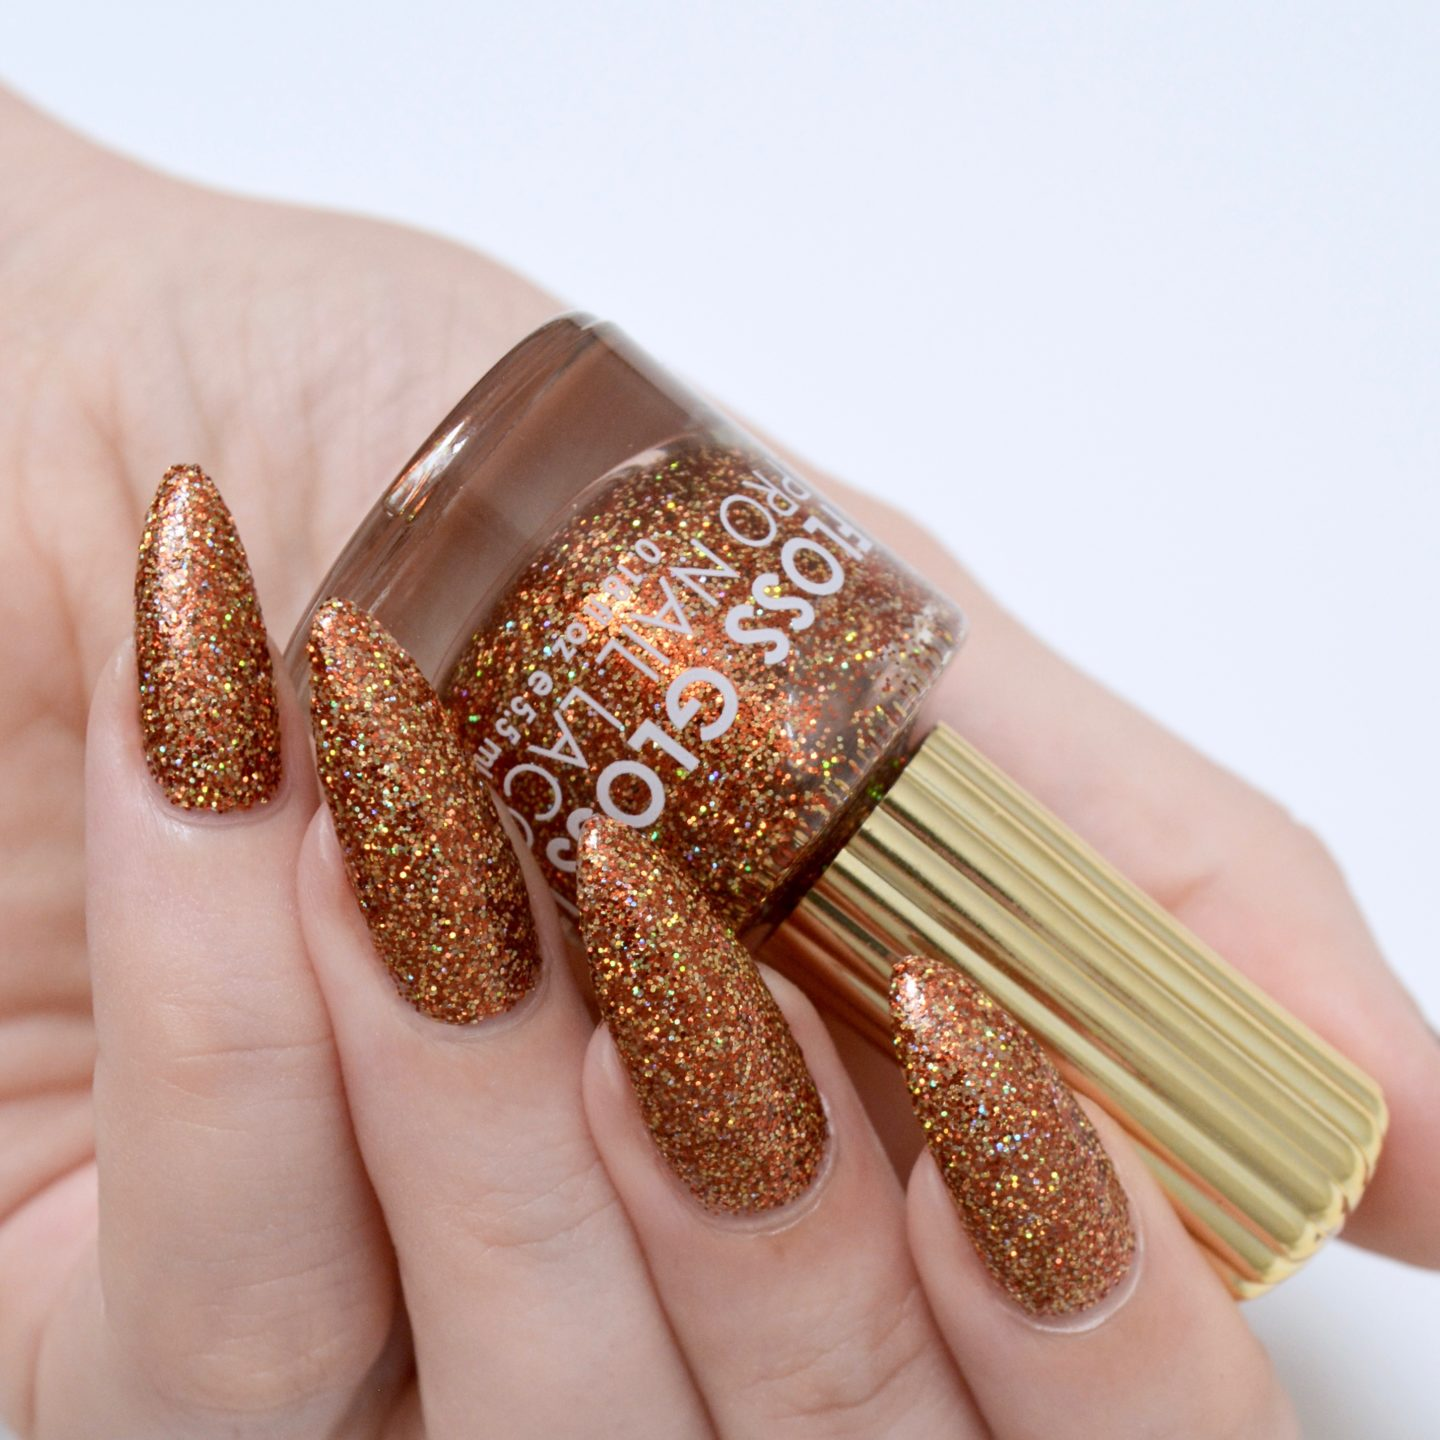 Floss Gloss Glitters - Honey